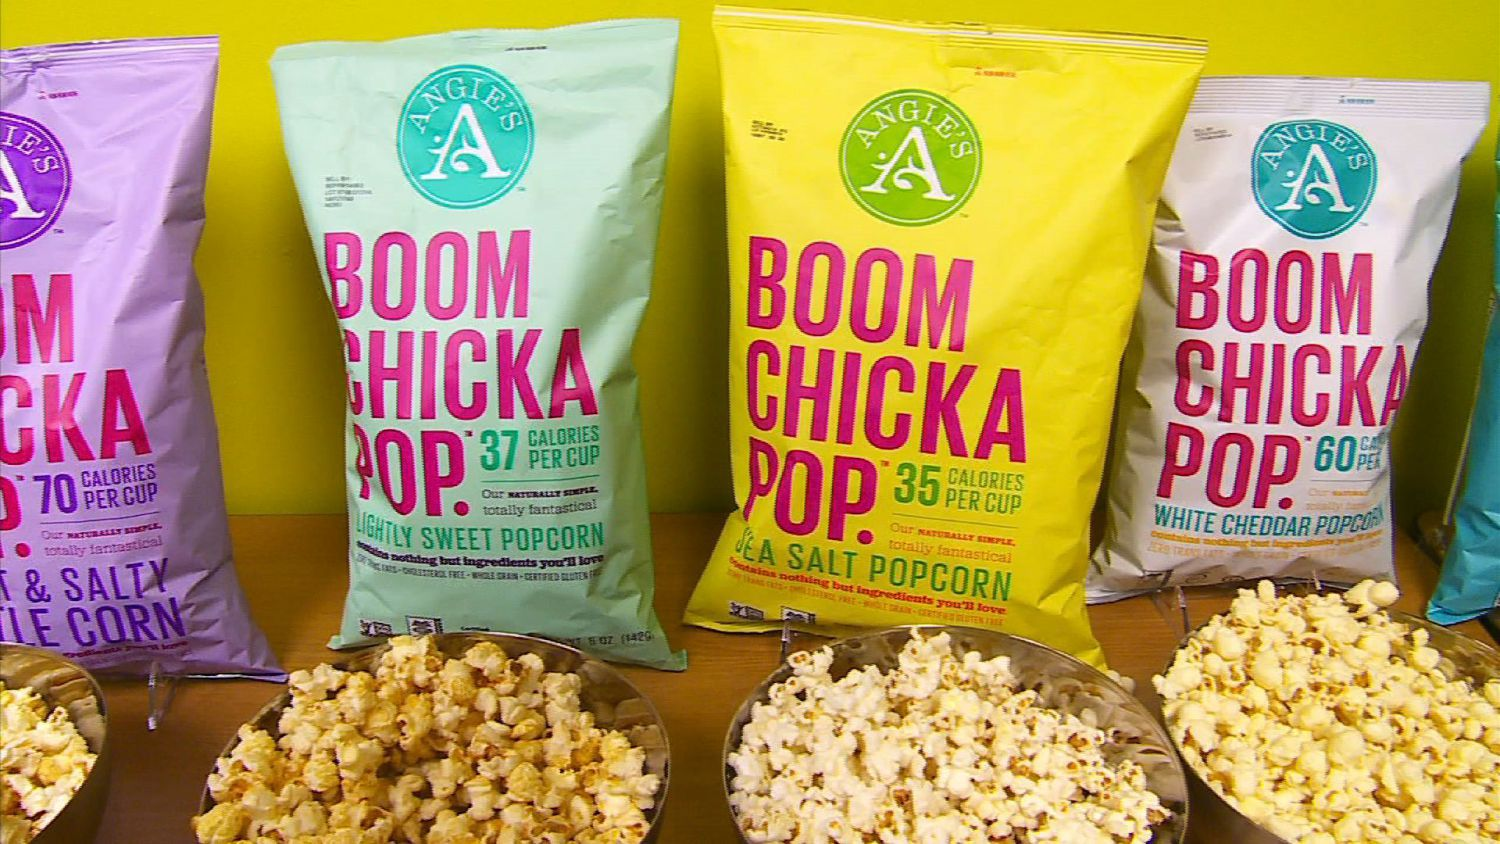 Conagra buying Mankato-based Boomchickapop